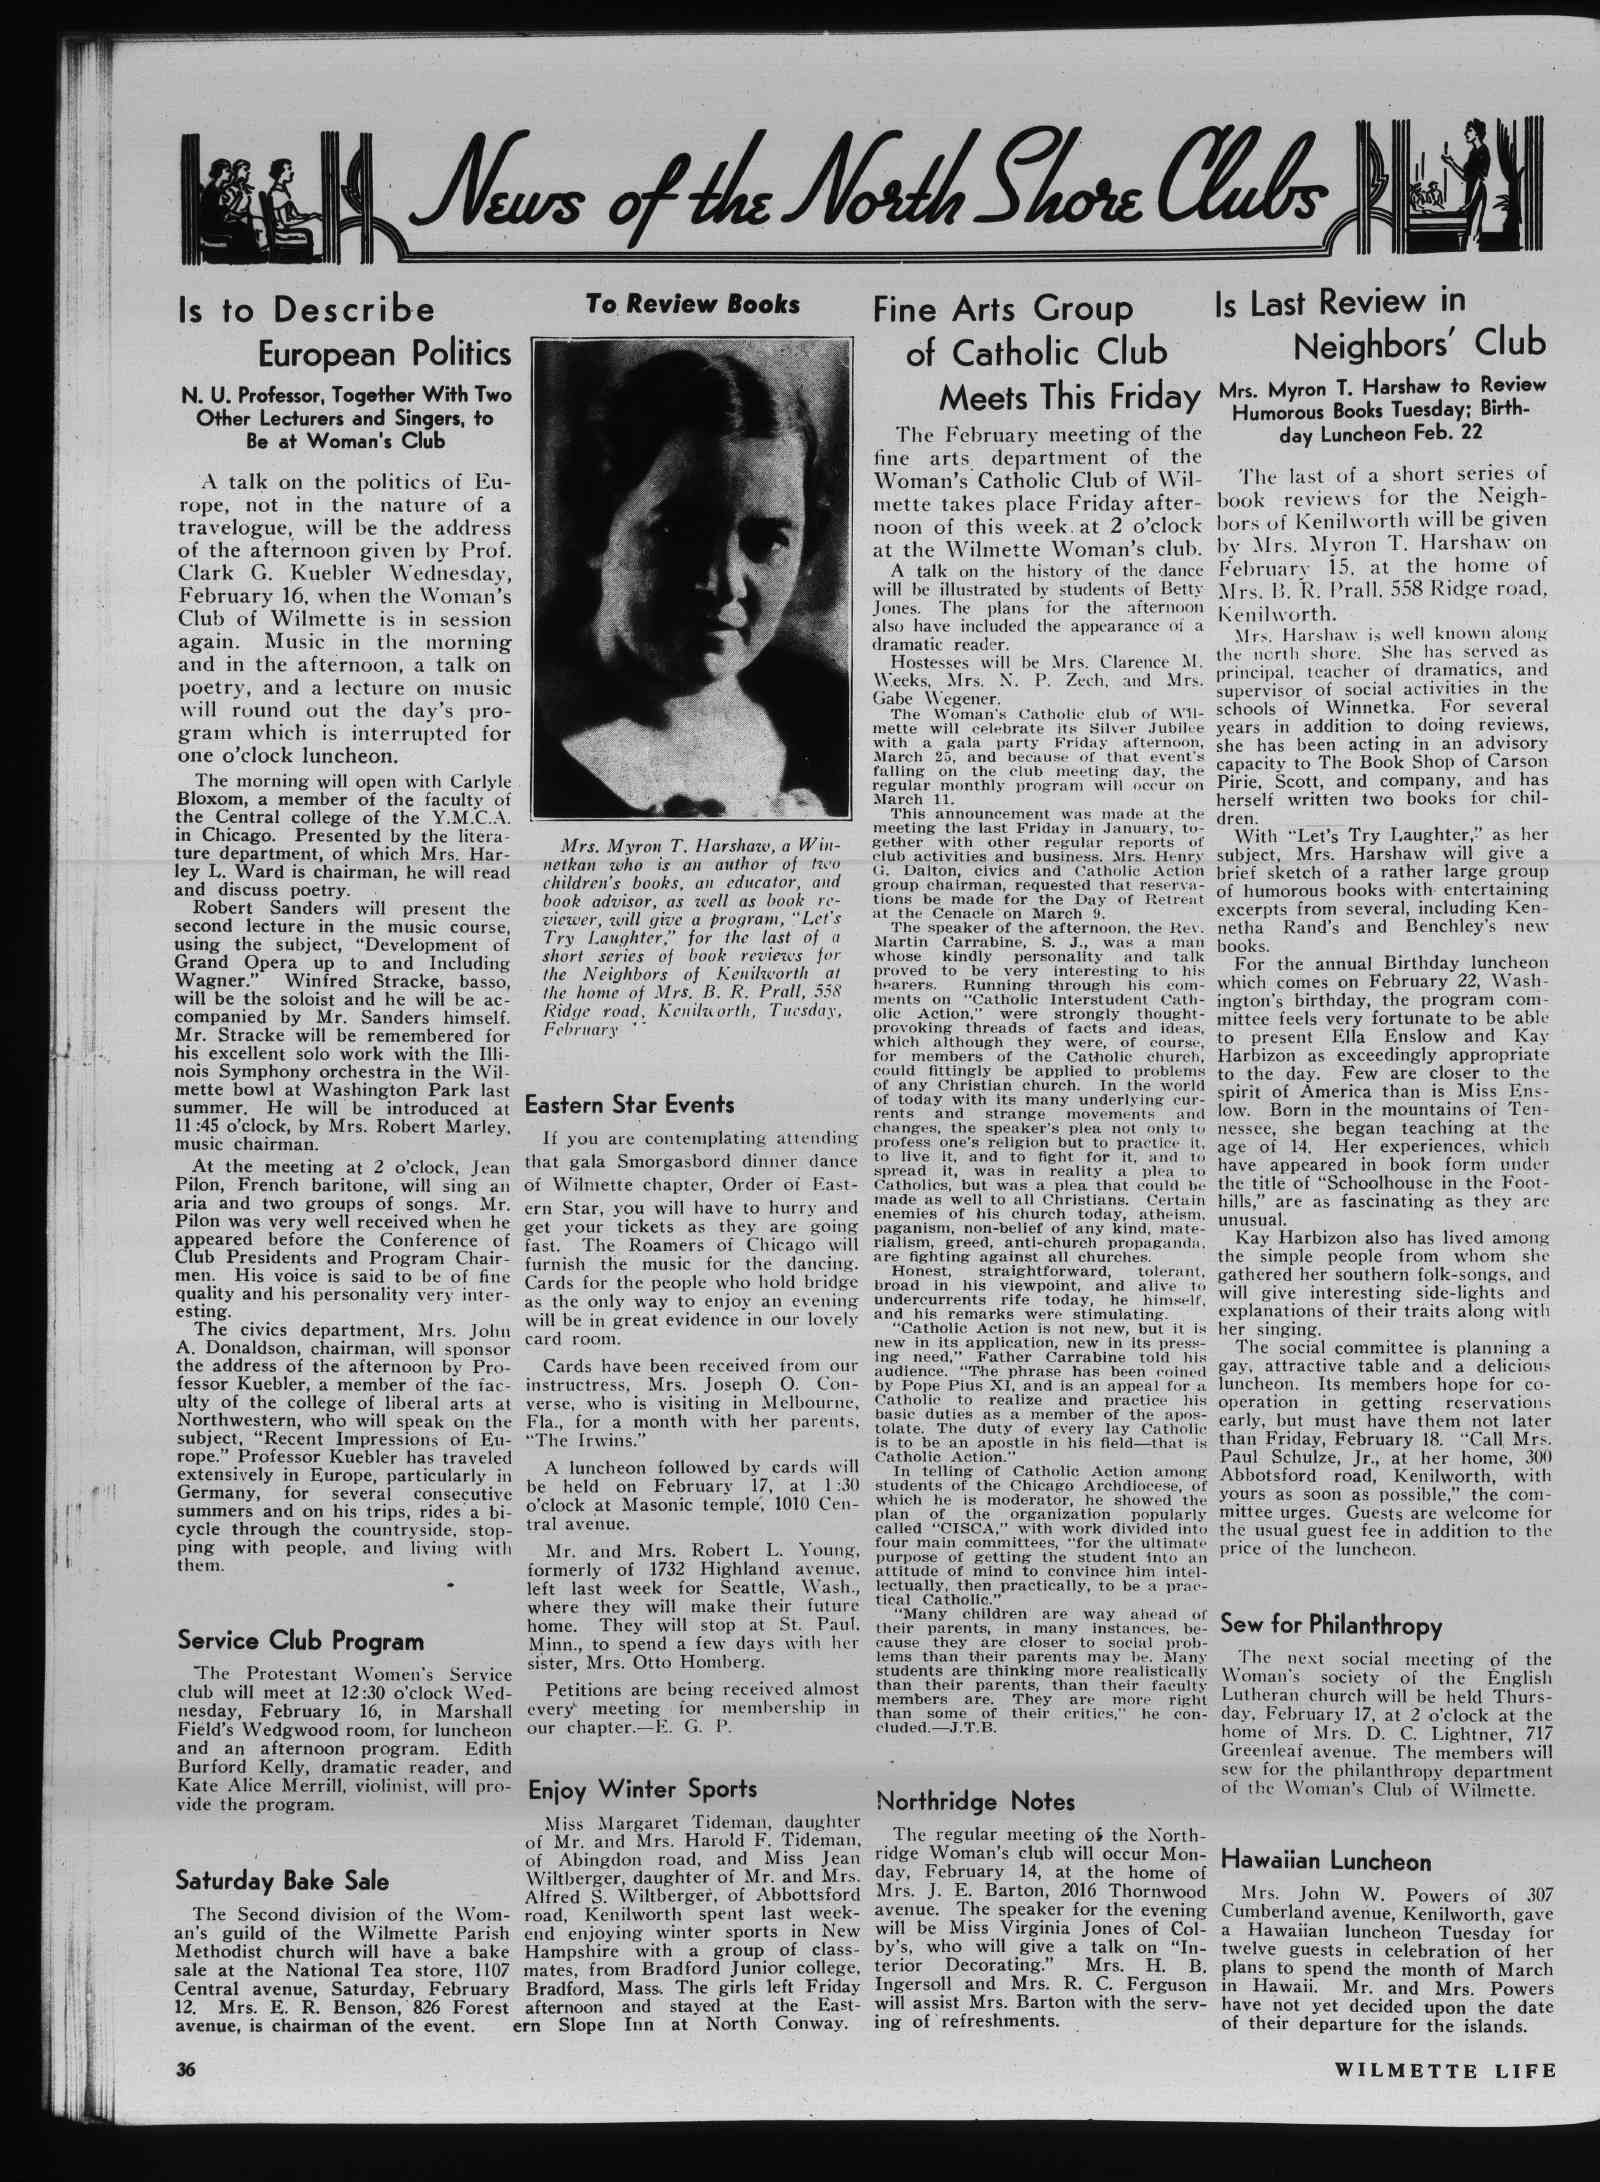 Wilmette Life (Wilmette, Illinois), 10 Feb 1938